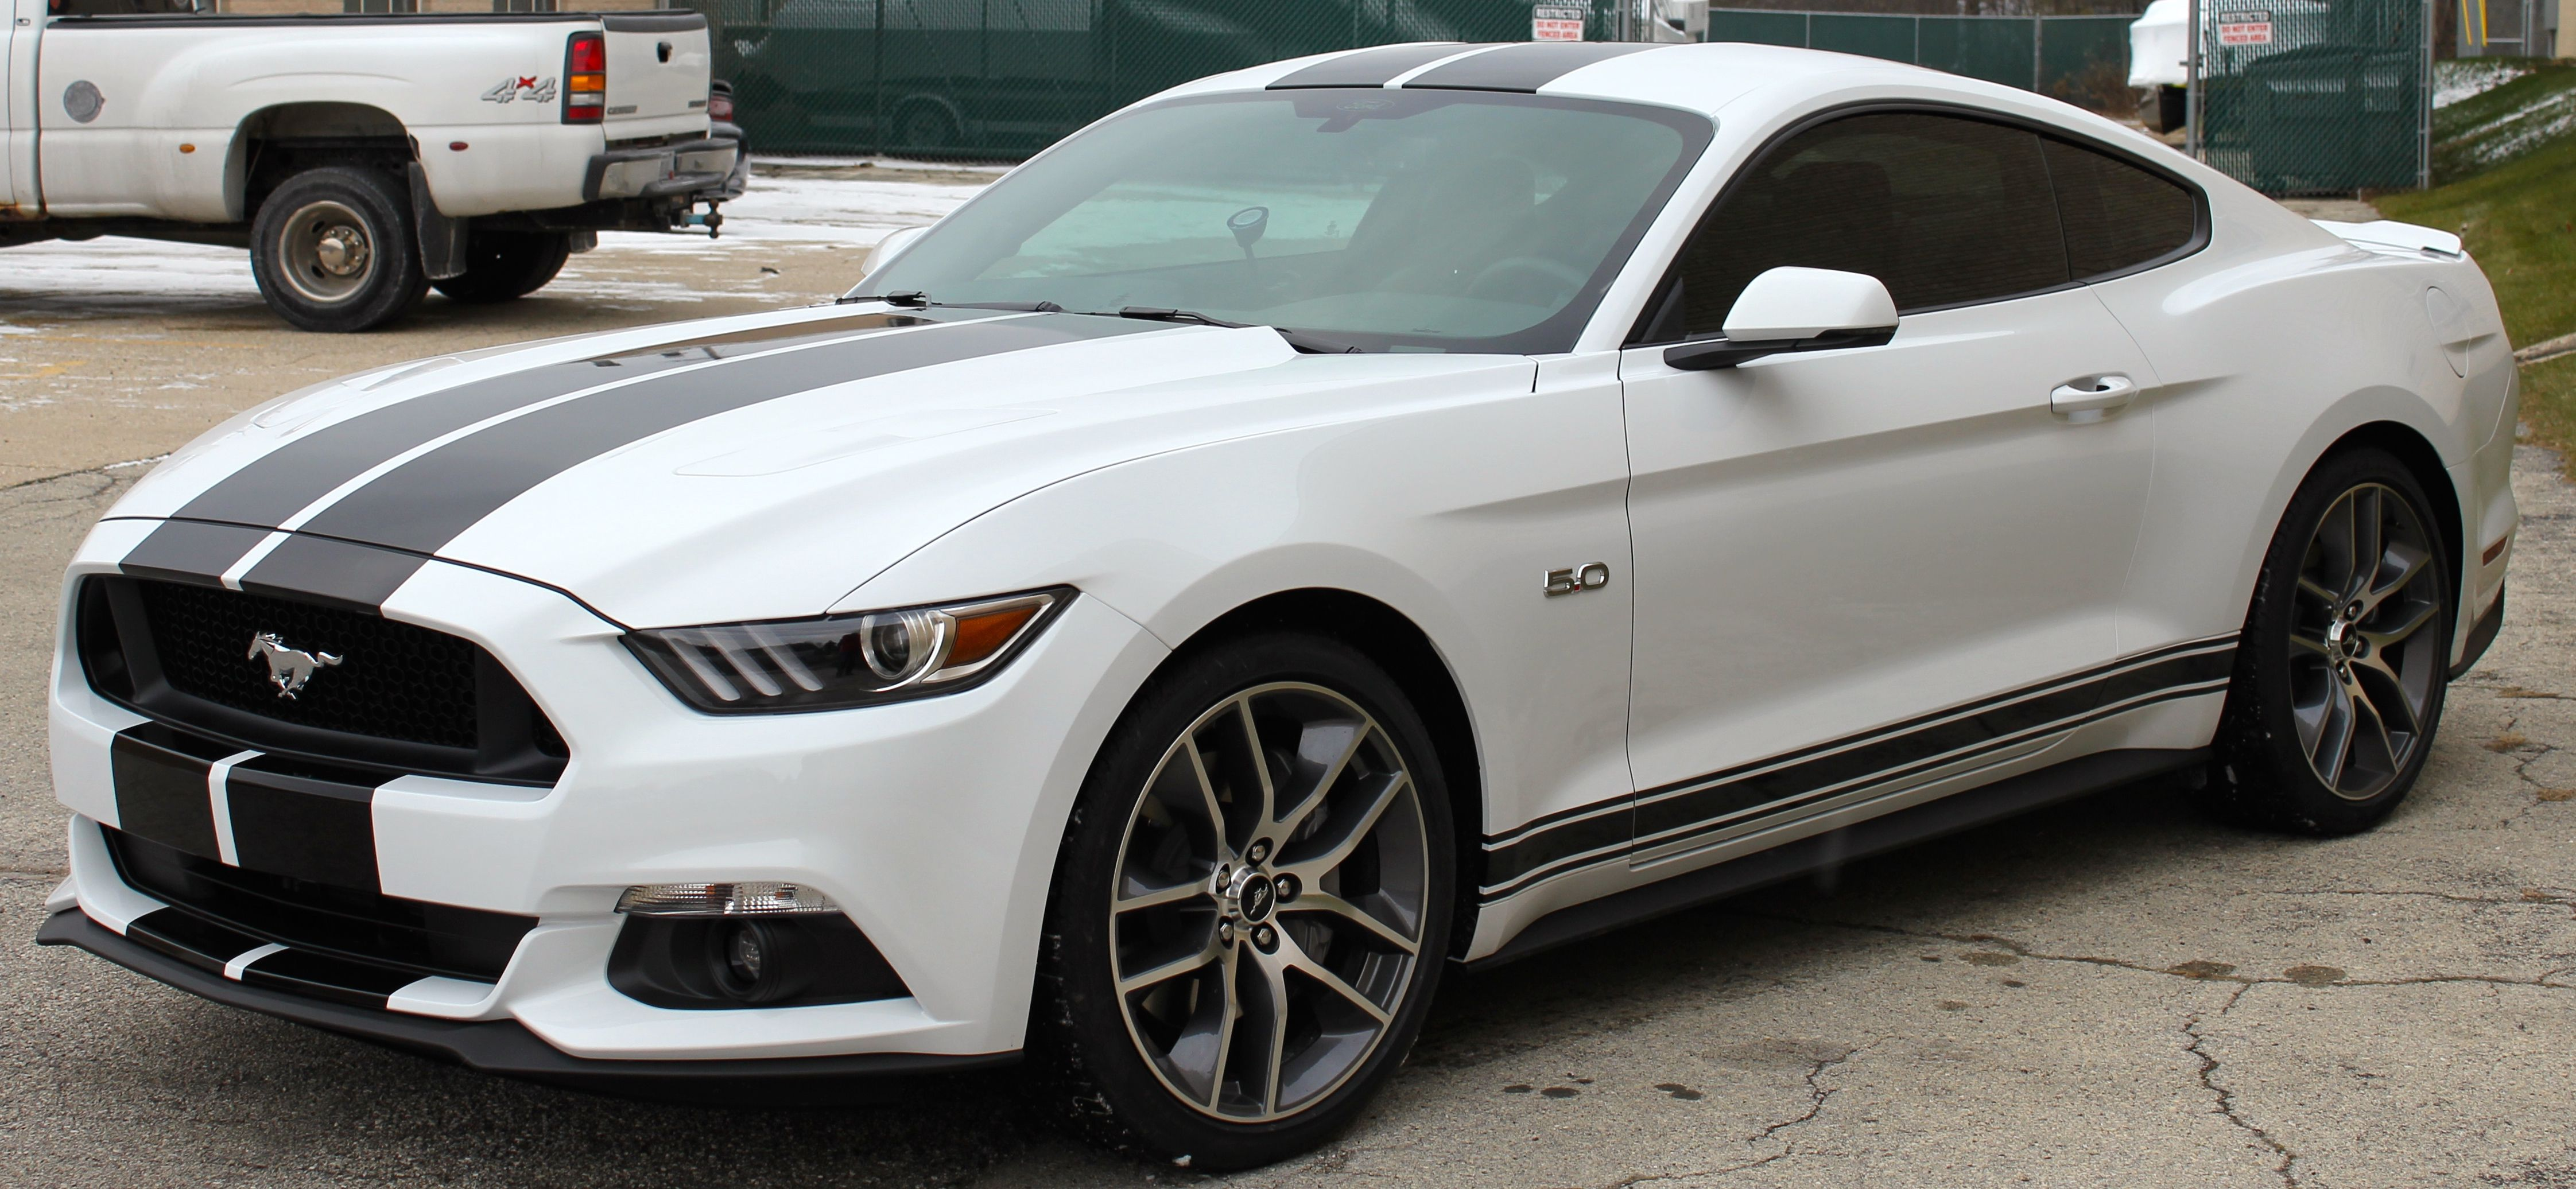 white mustang gt wblack stripes side view - Ford Mustang Gt 2015 White